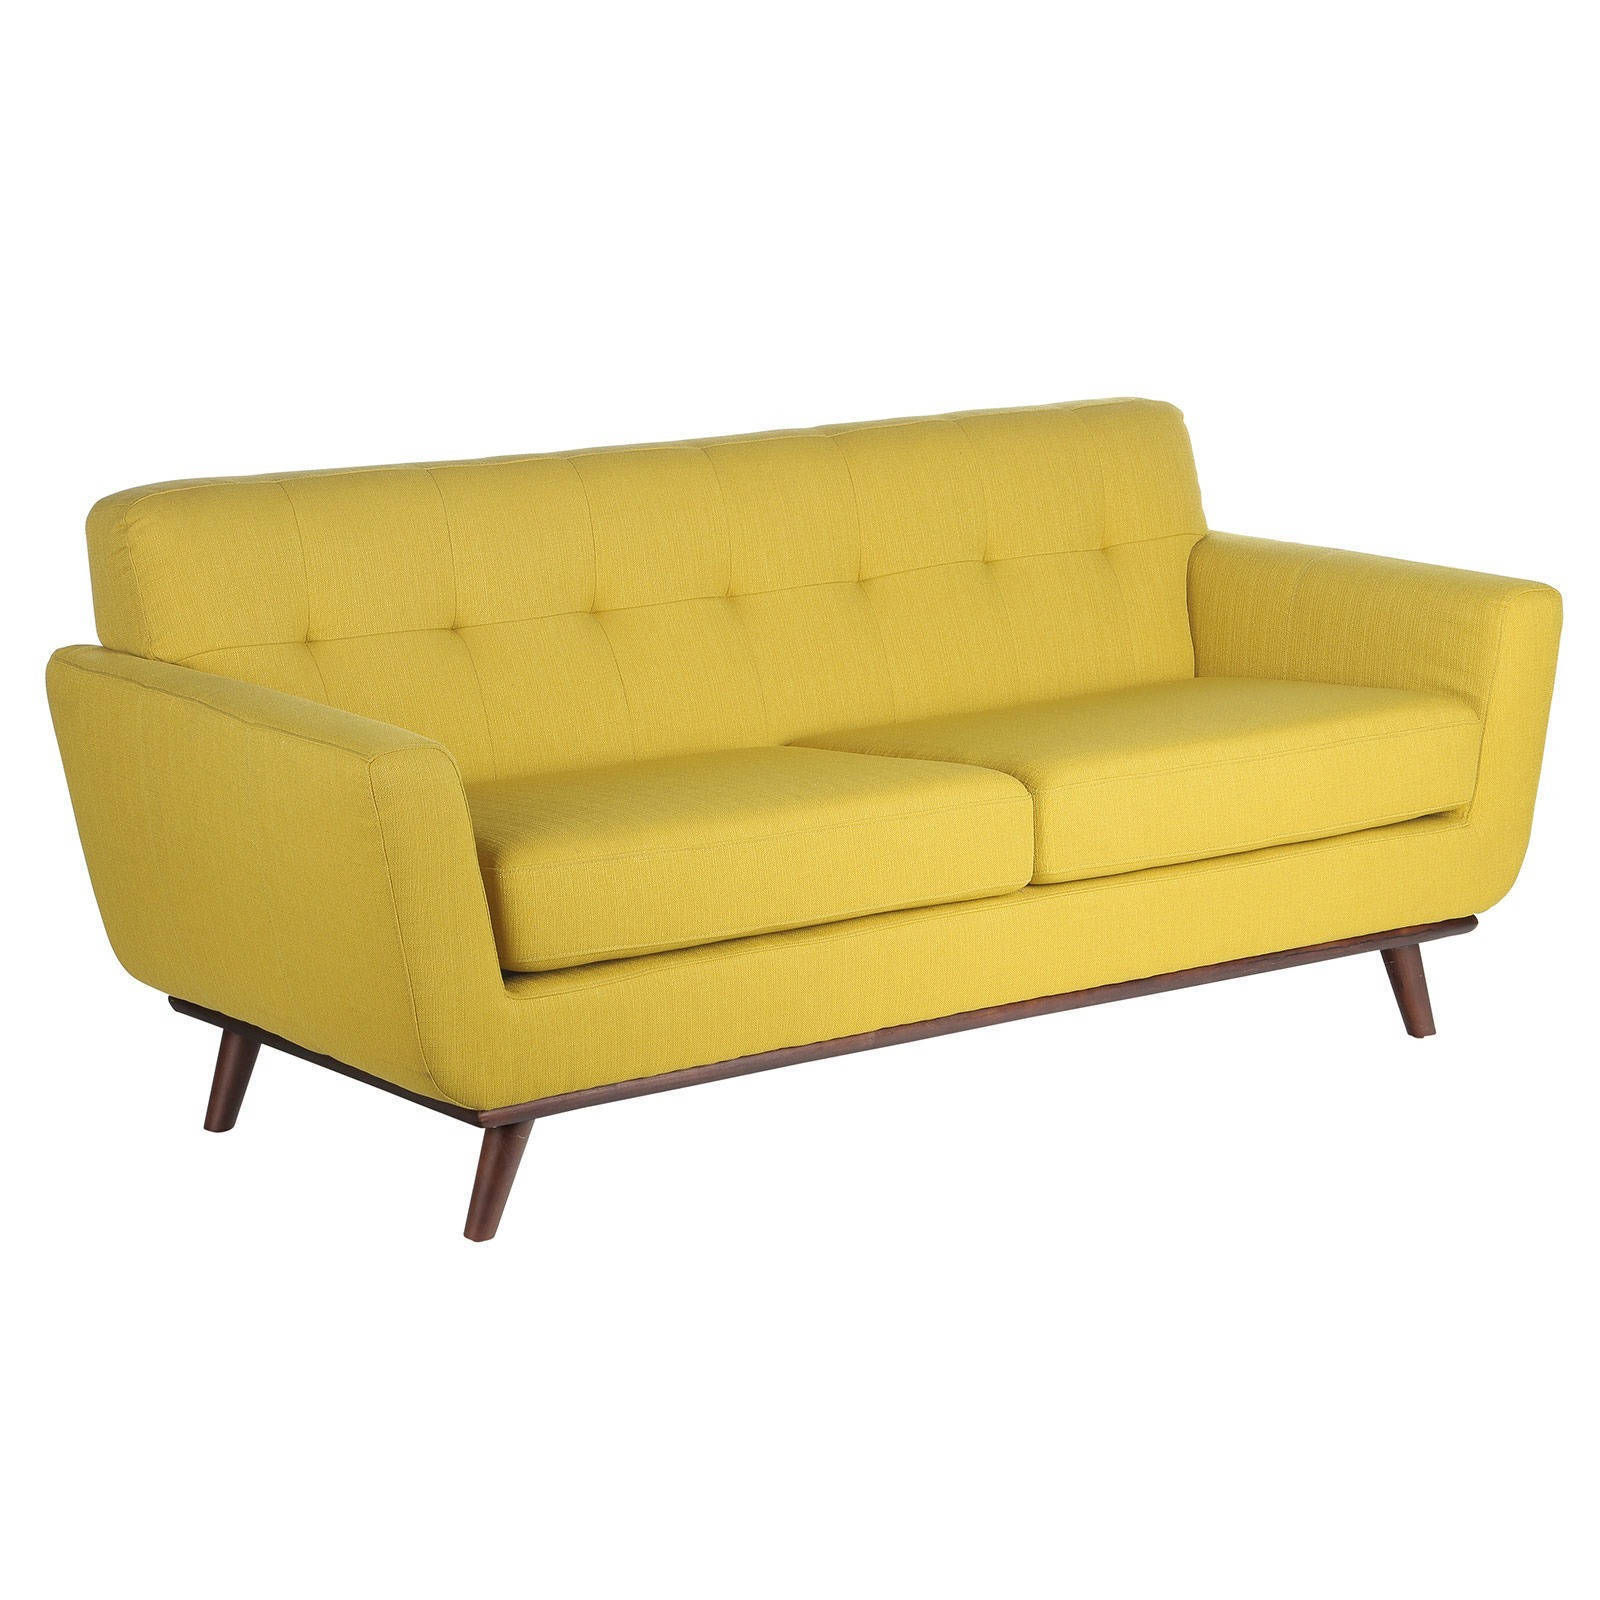 Retro Inflatable Sofa Retro Sofa